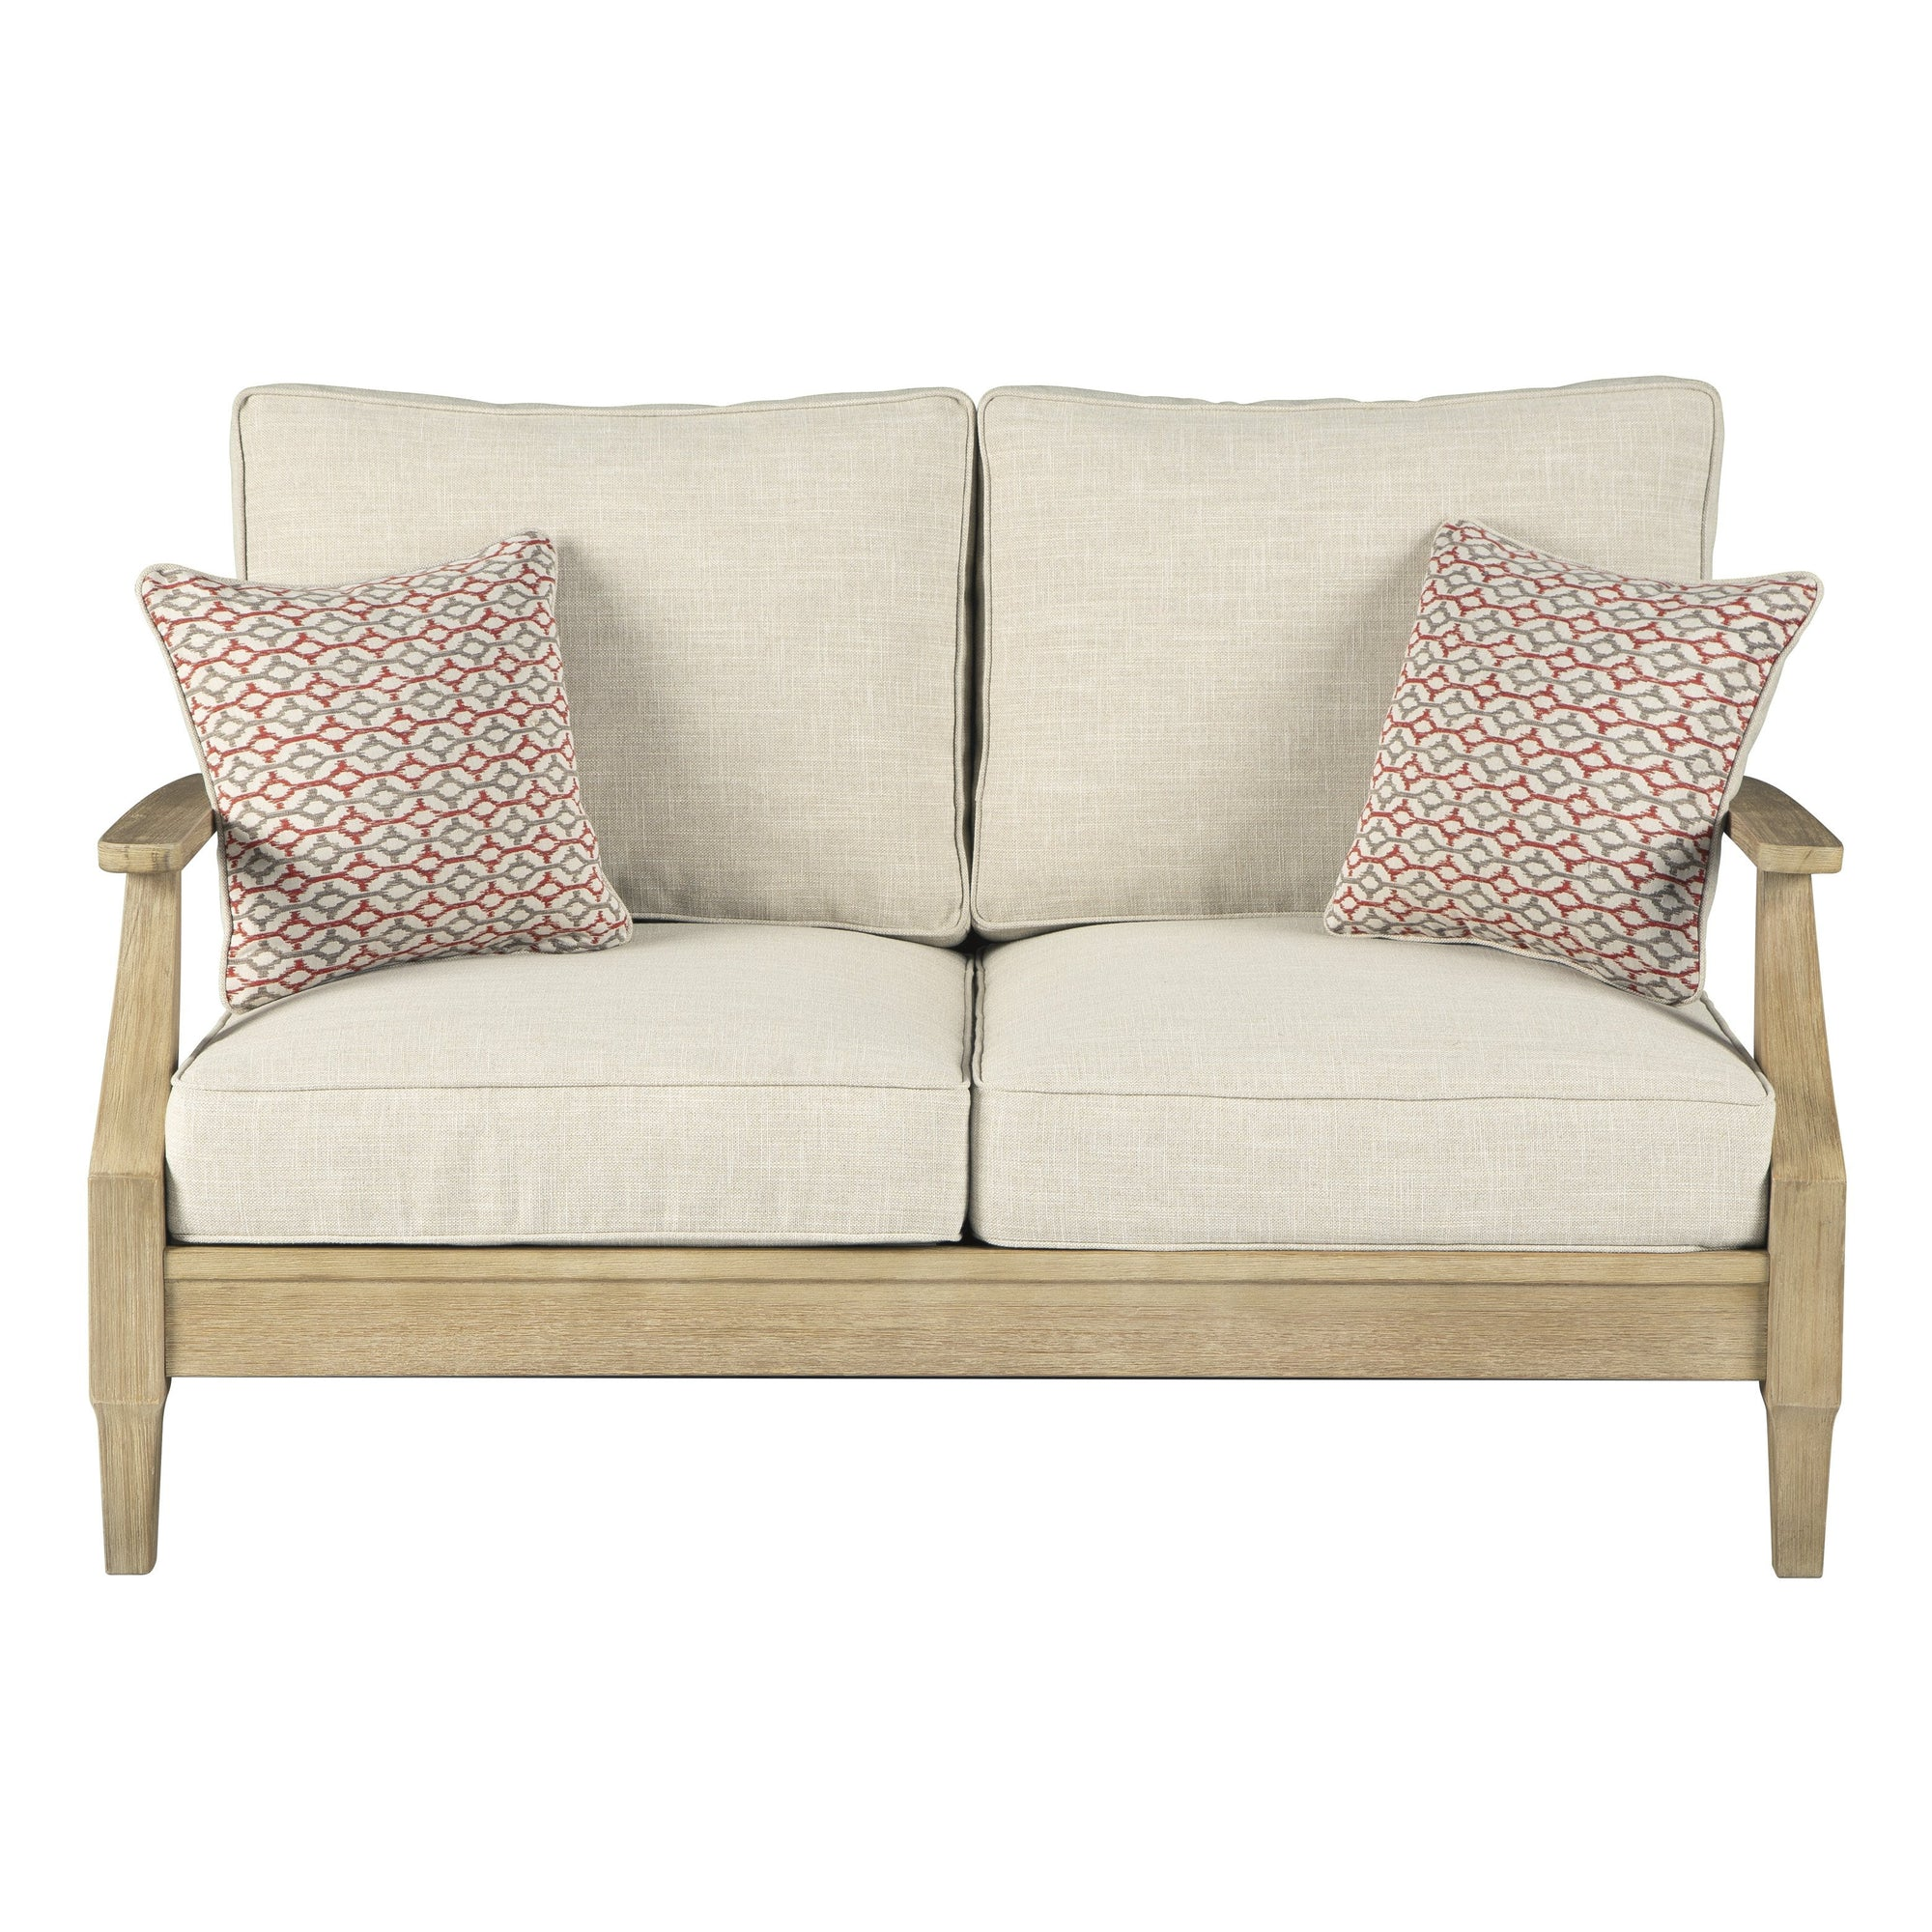 Dune Walk Outdoor Loveseat